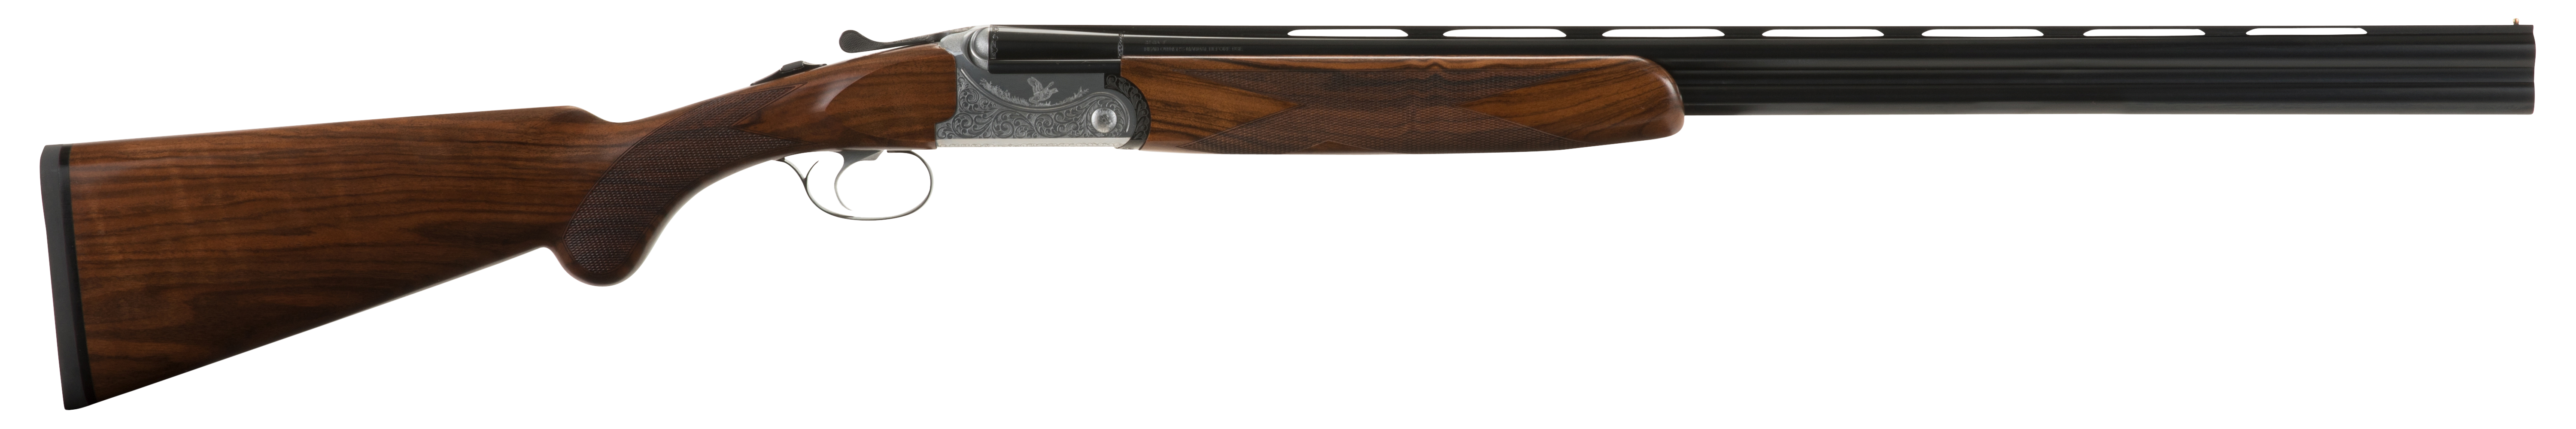 Barrett Sovereign 91626 Rutherford Over/Under 16 Gauge 26